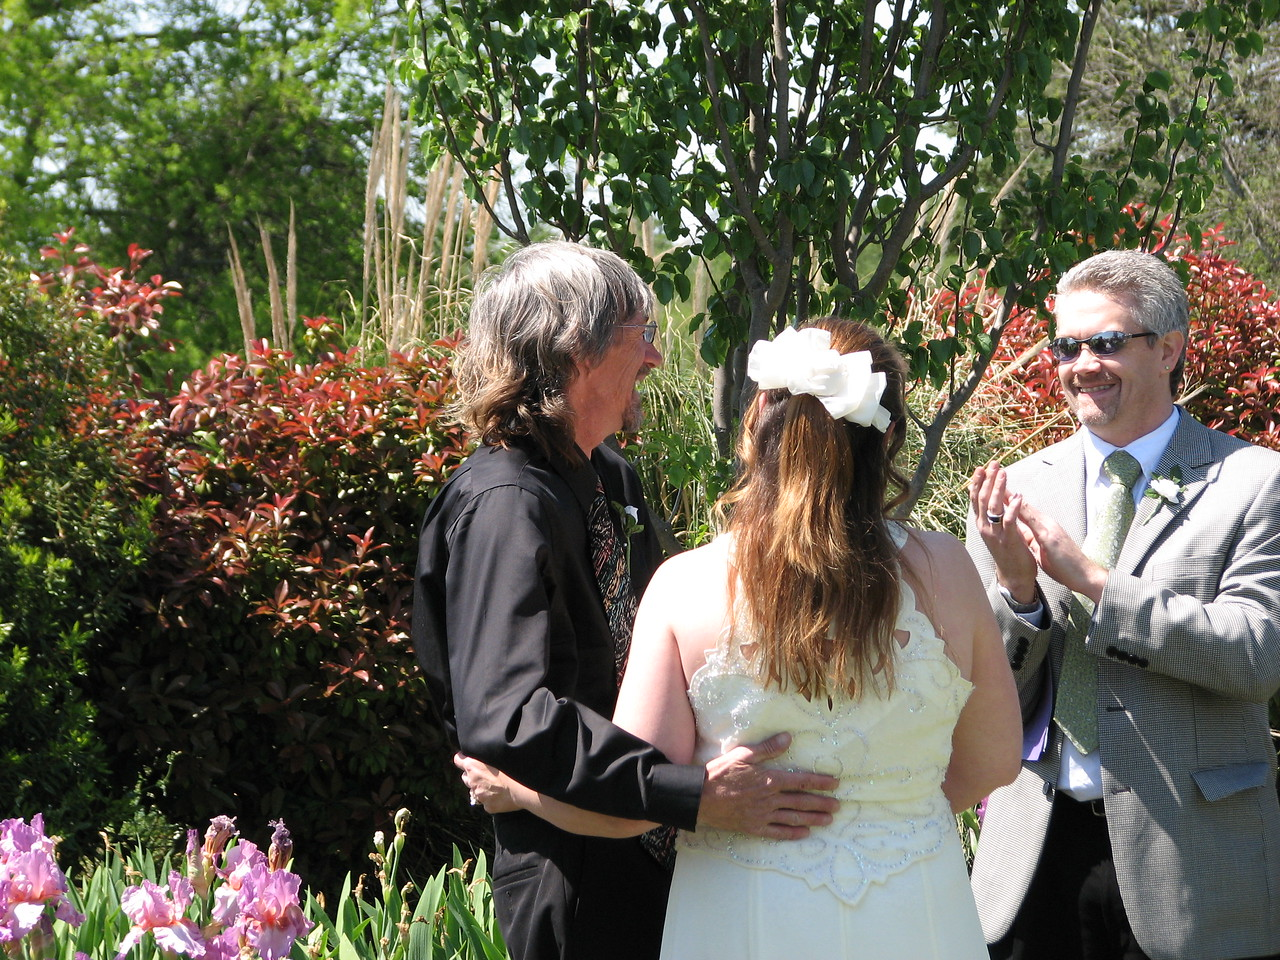 Come and get married at our home & Garden!! Green Acres Garden B&B - Luxury in the country! Private Cottage on Lake Lavon...